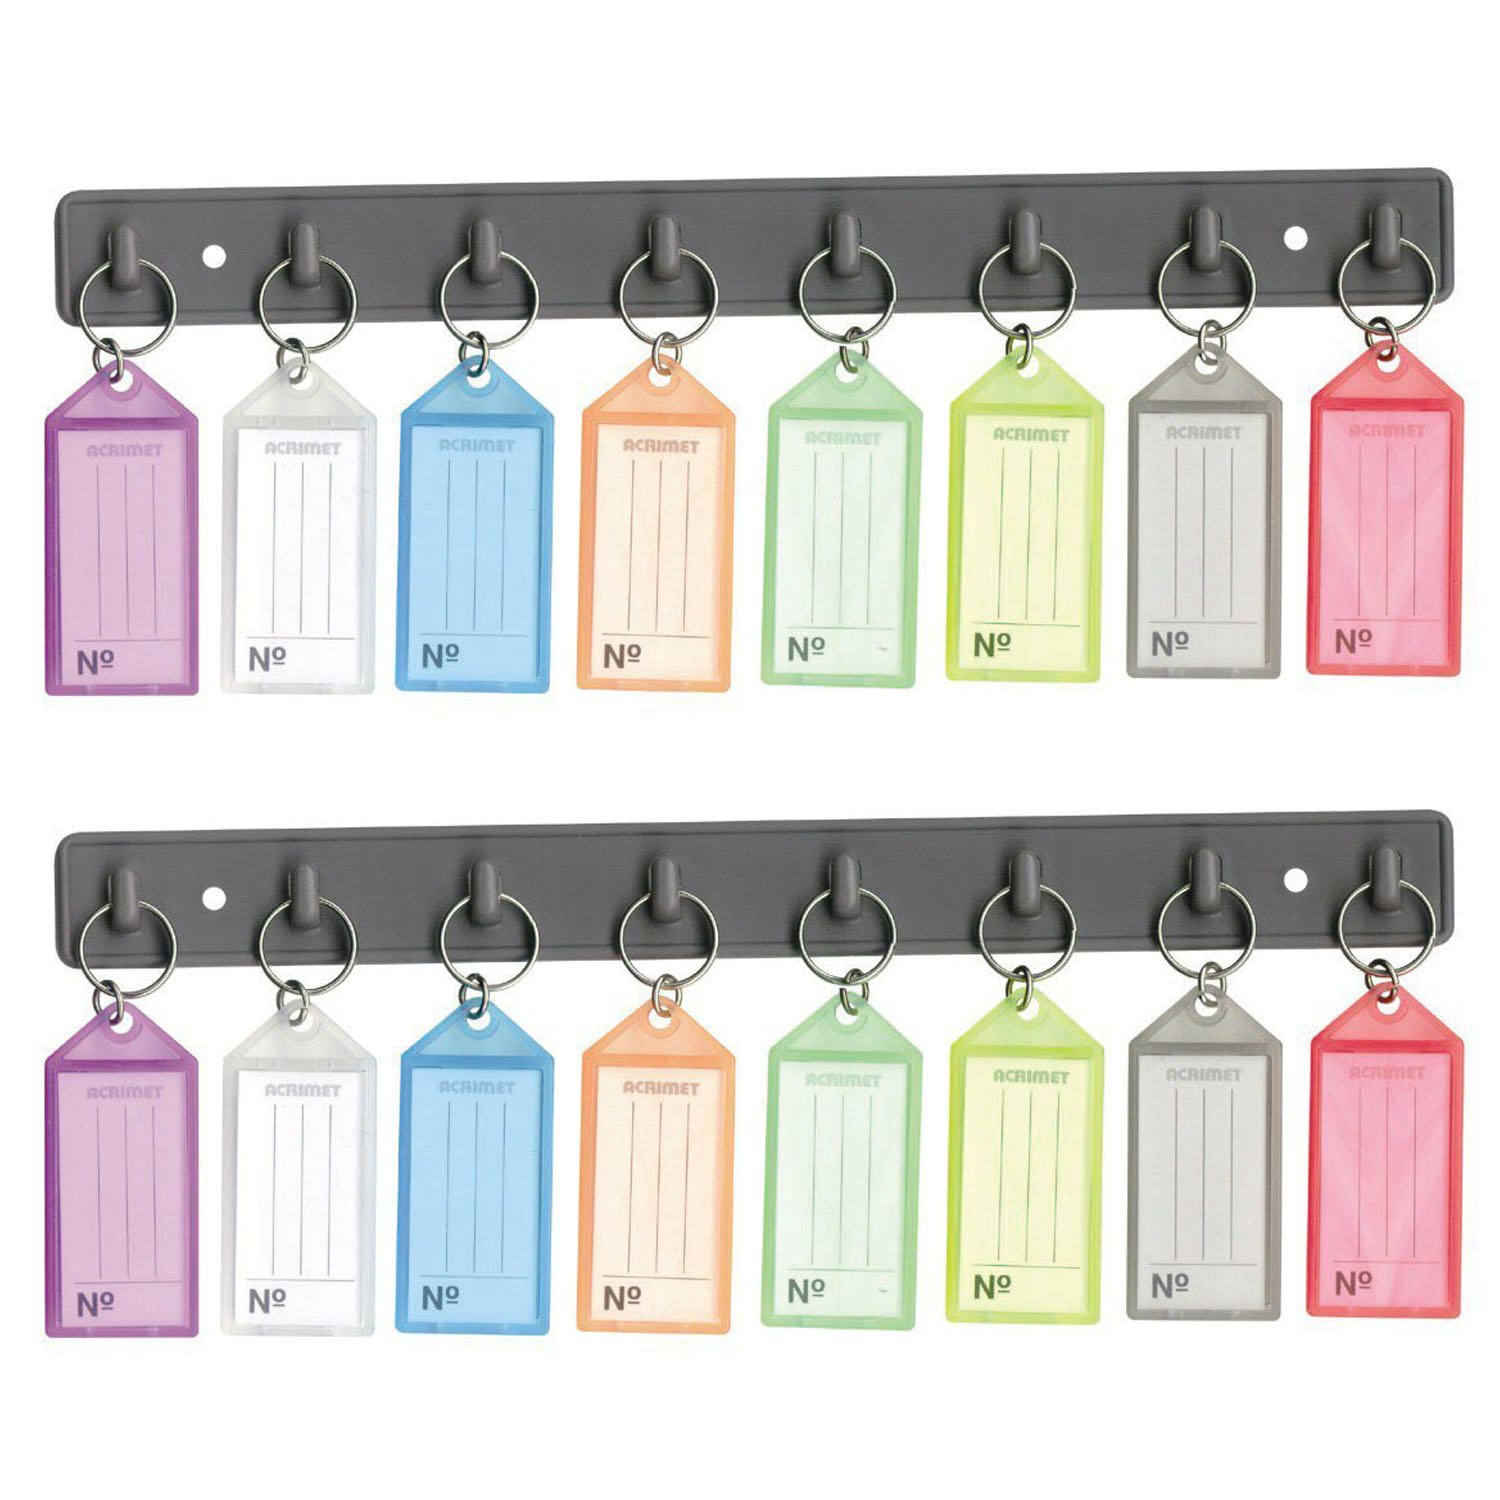 Acrimet Key Tag Rack w/ 8 Keyring Tags (2 Pack)